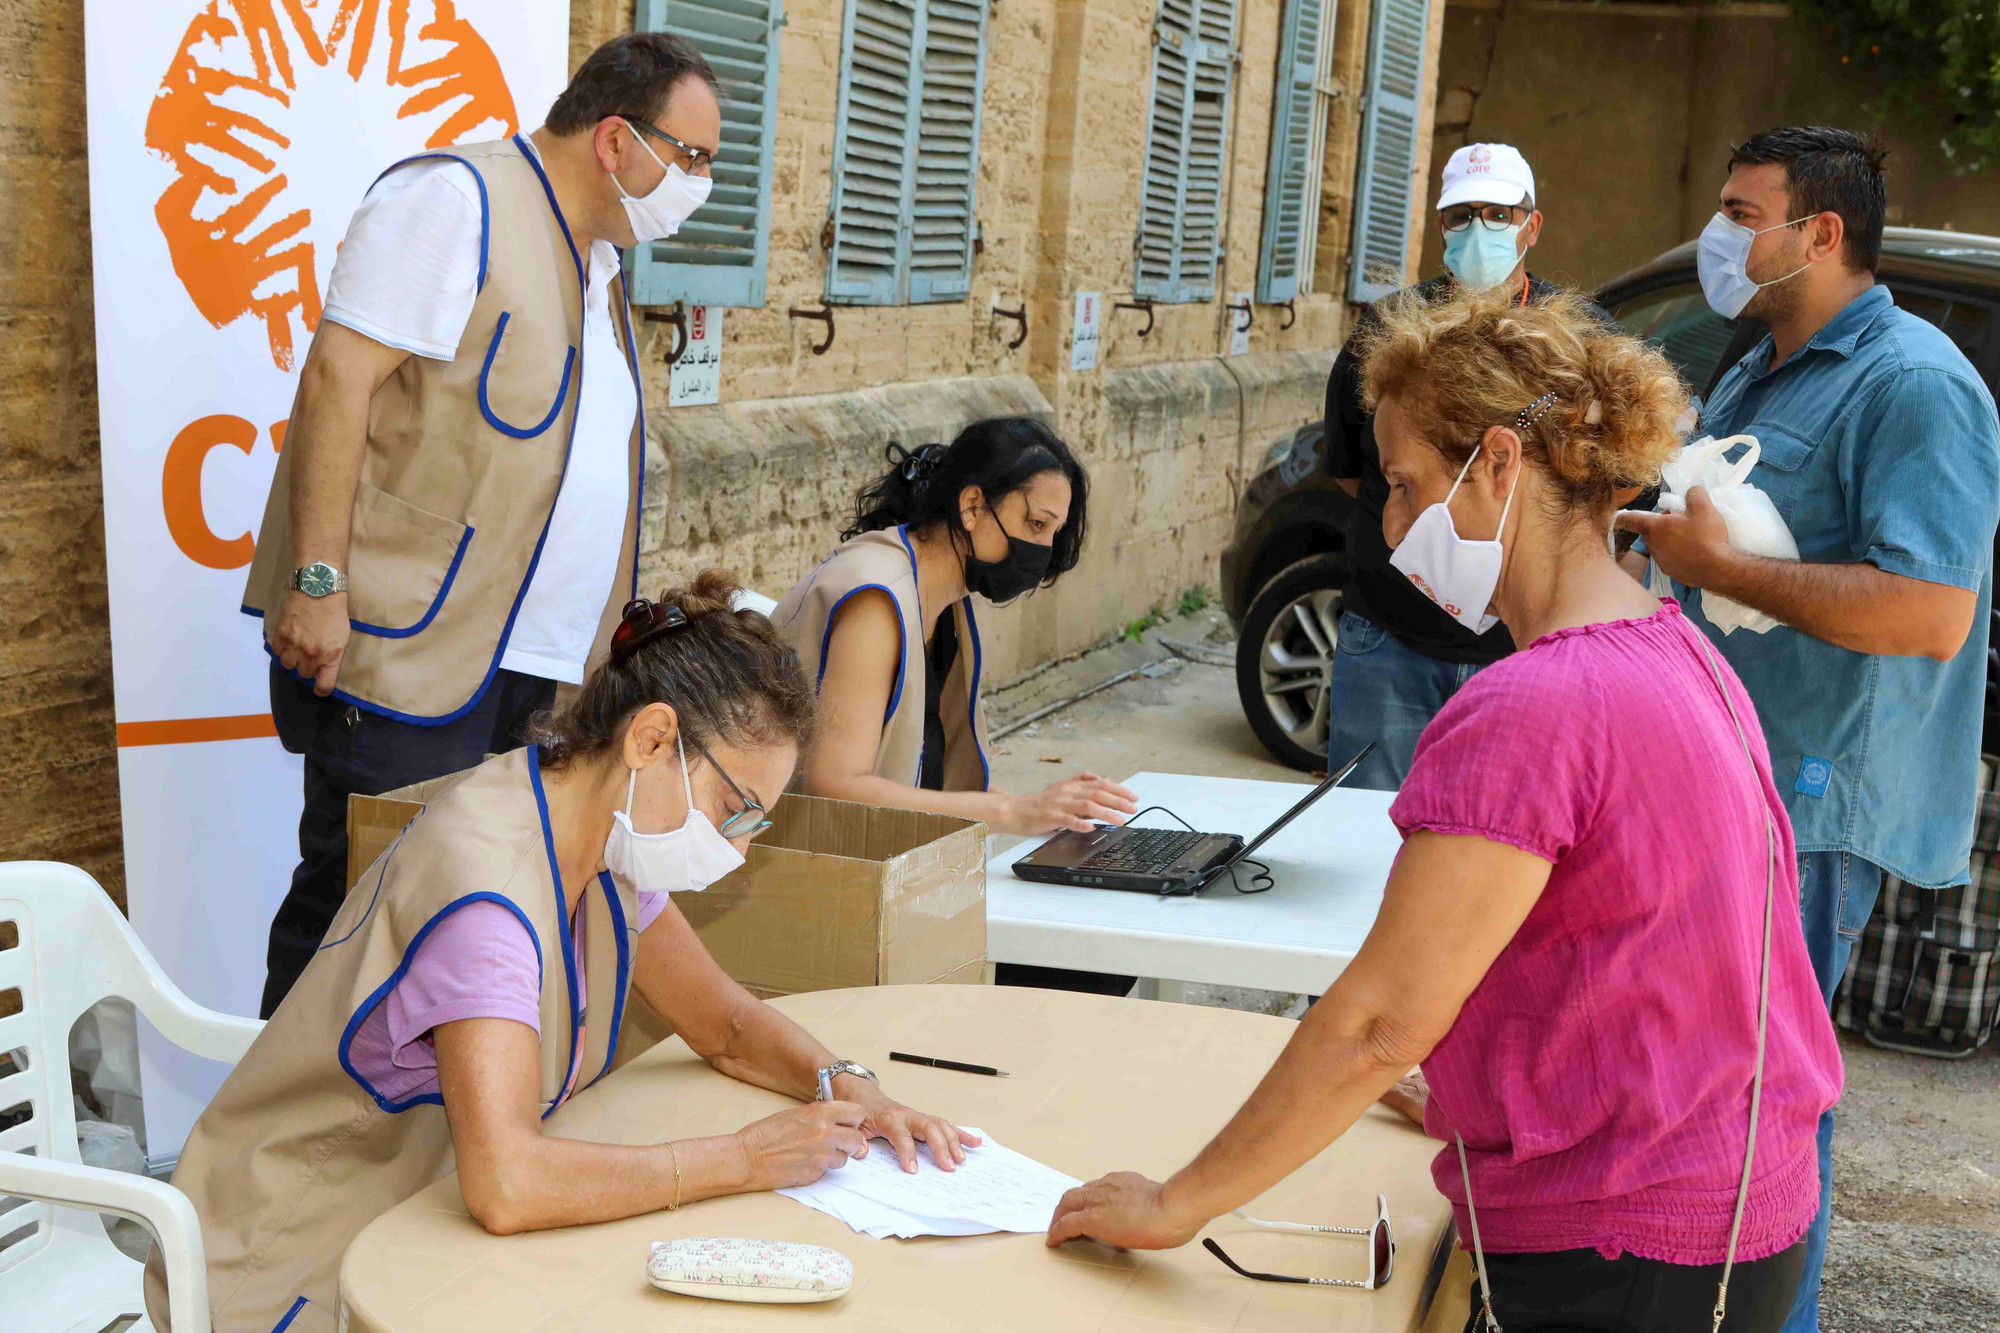 A woman worker in a mask fills out a form at a food distribution site in Beirut while another woman in a mask stands across the table from her.